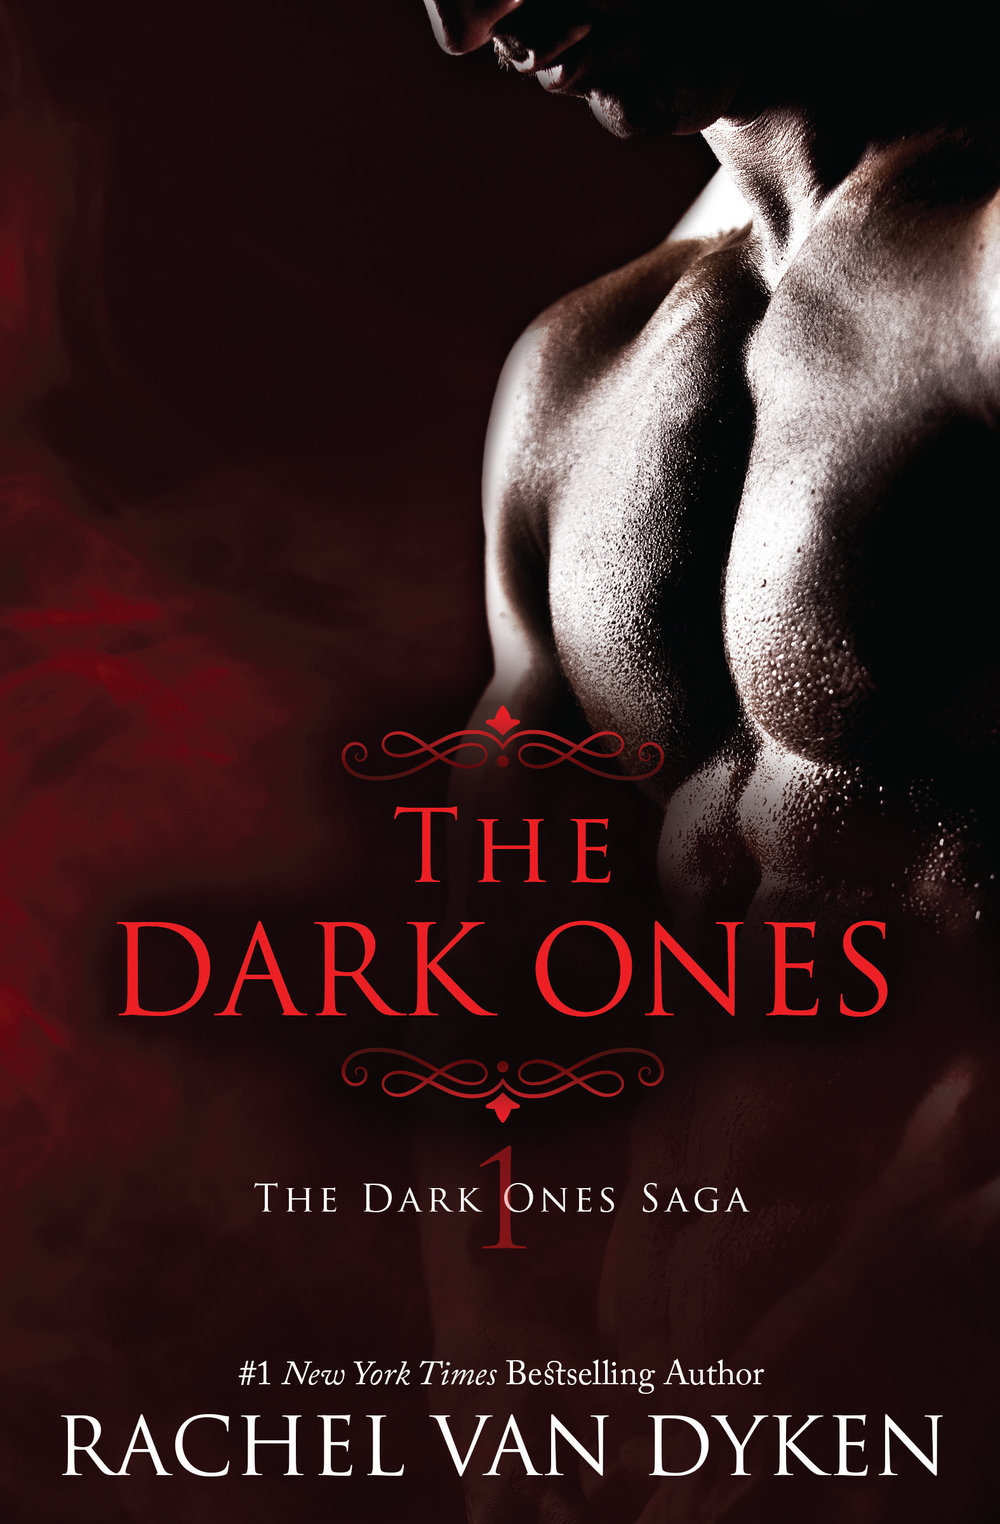 Rachel Van Dyken The Dark Ones Saga Dark Ones.jpeg